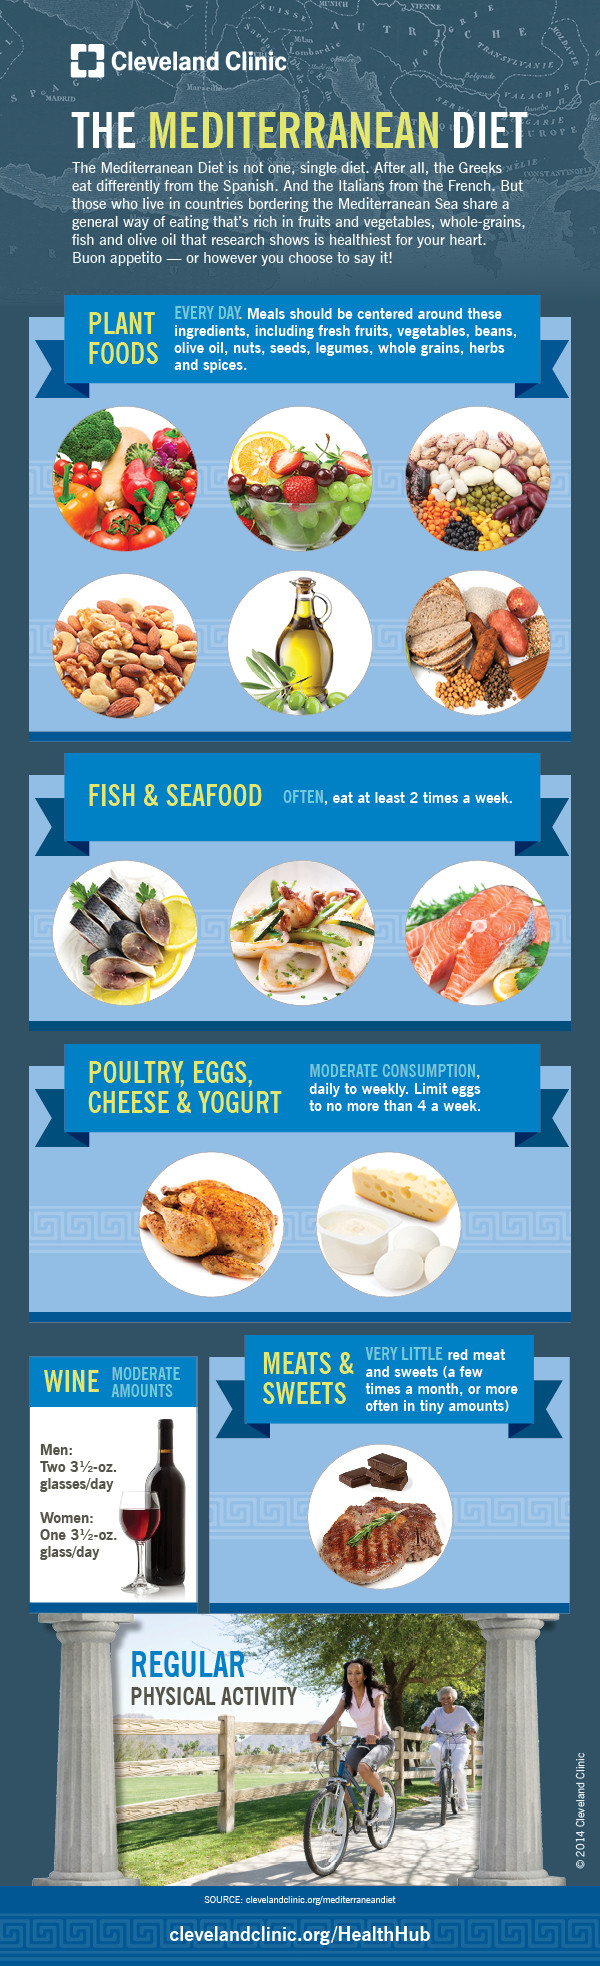 Heart Healthy Mediterranean Diet  The Diet Proven to Protect Your Heart Infographic